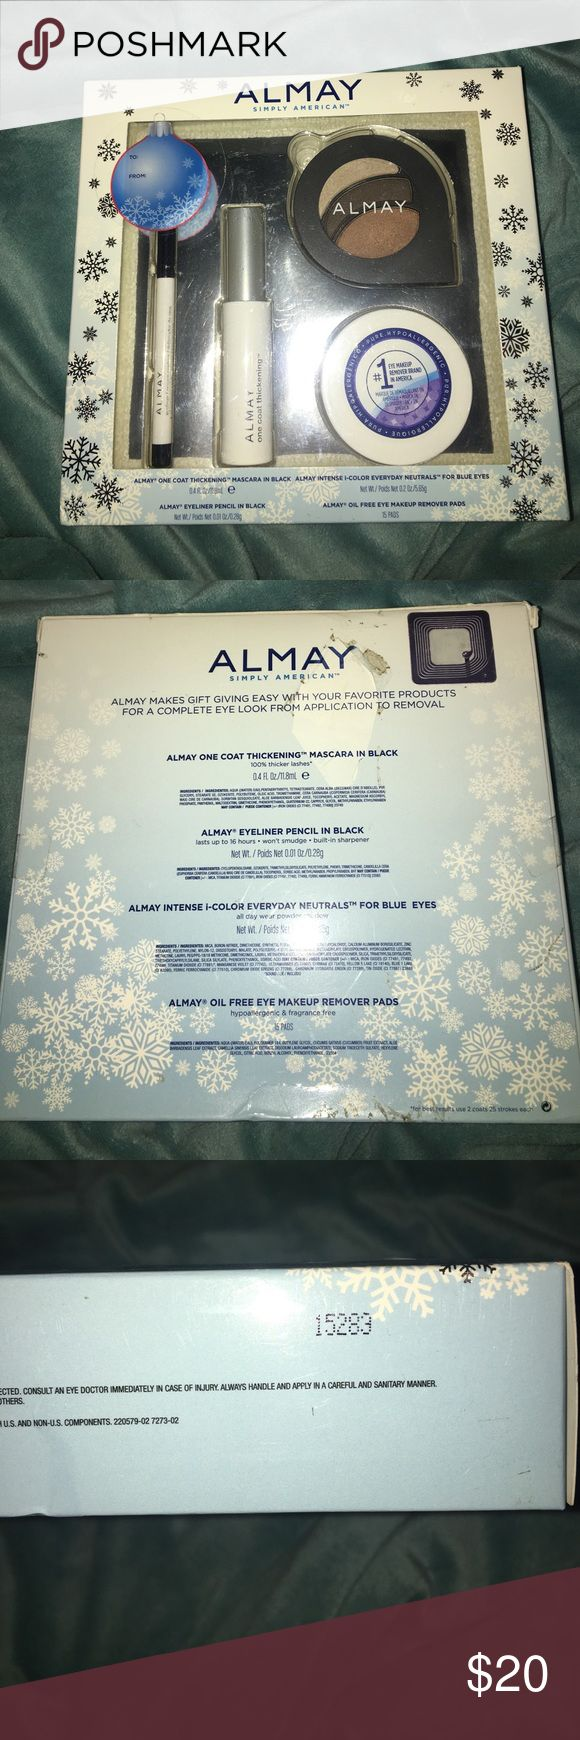 Almay Cosmetics Set NWT, Almay cosmetics set. Includes mascara, Eyeshadow trio, makeup remover pads, and an eyeliner in black! Authentic, brand new. Back of the box is a little damaged as shown in picture. The makeup remover pads come in a pack of 15. Almay Makeup